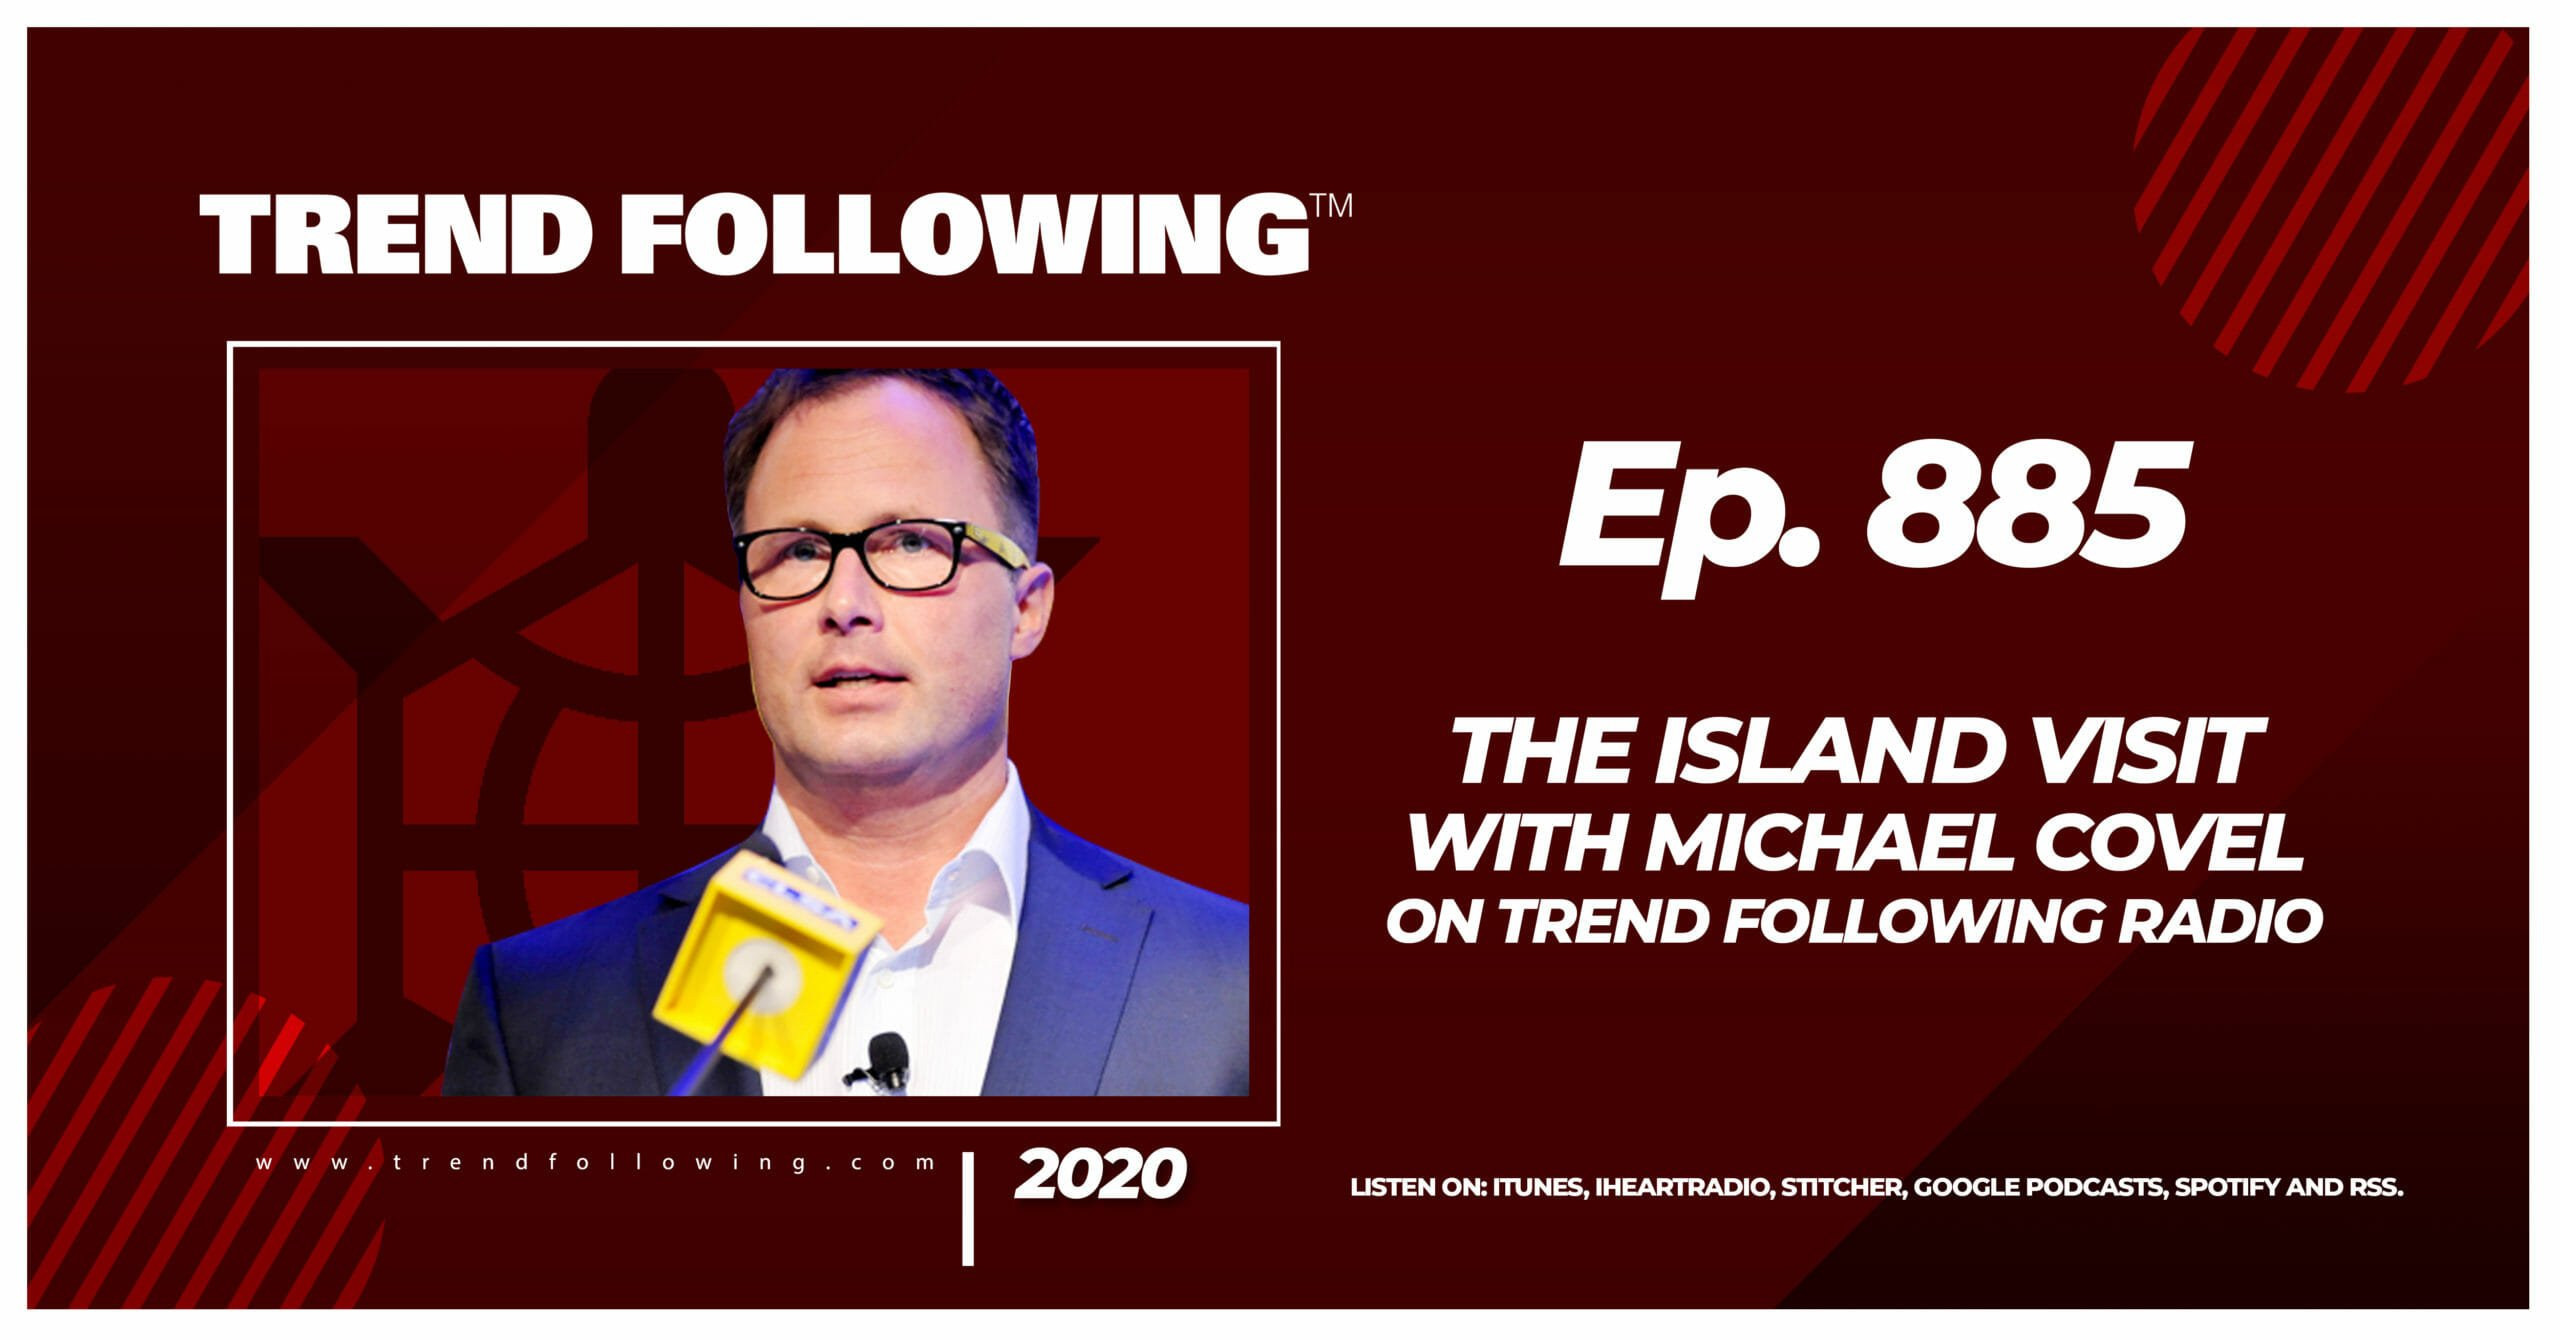 The Island Visit with Michael Covel on Trend Following Radio